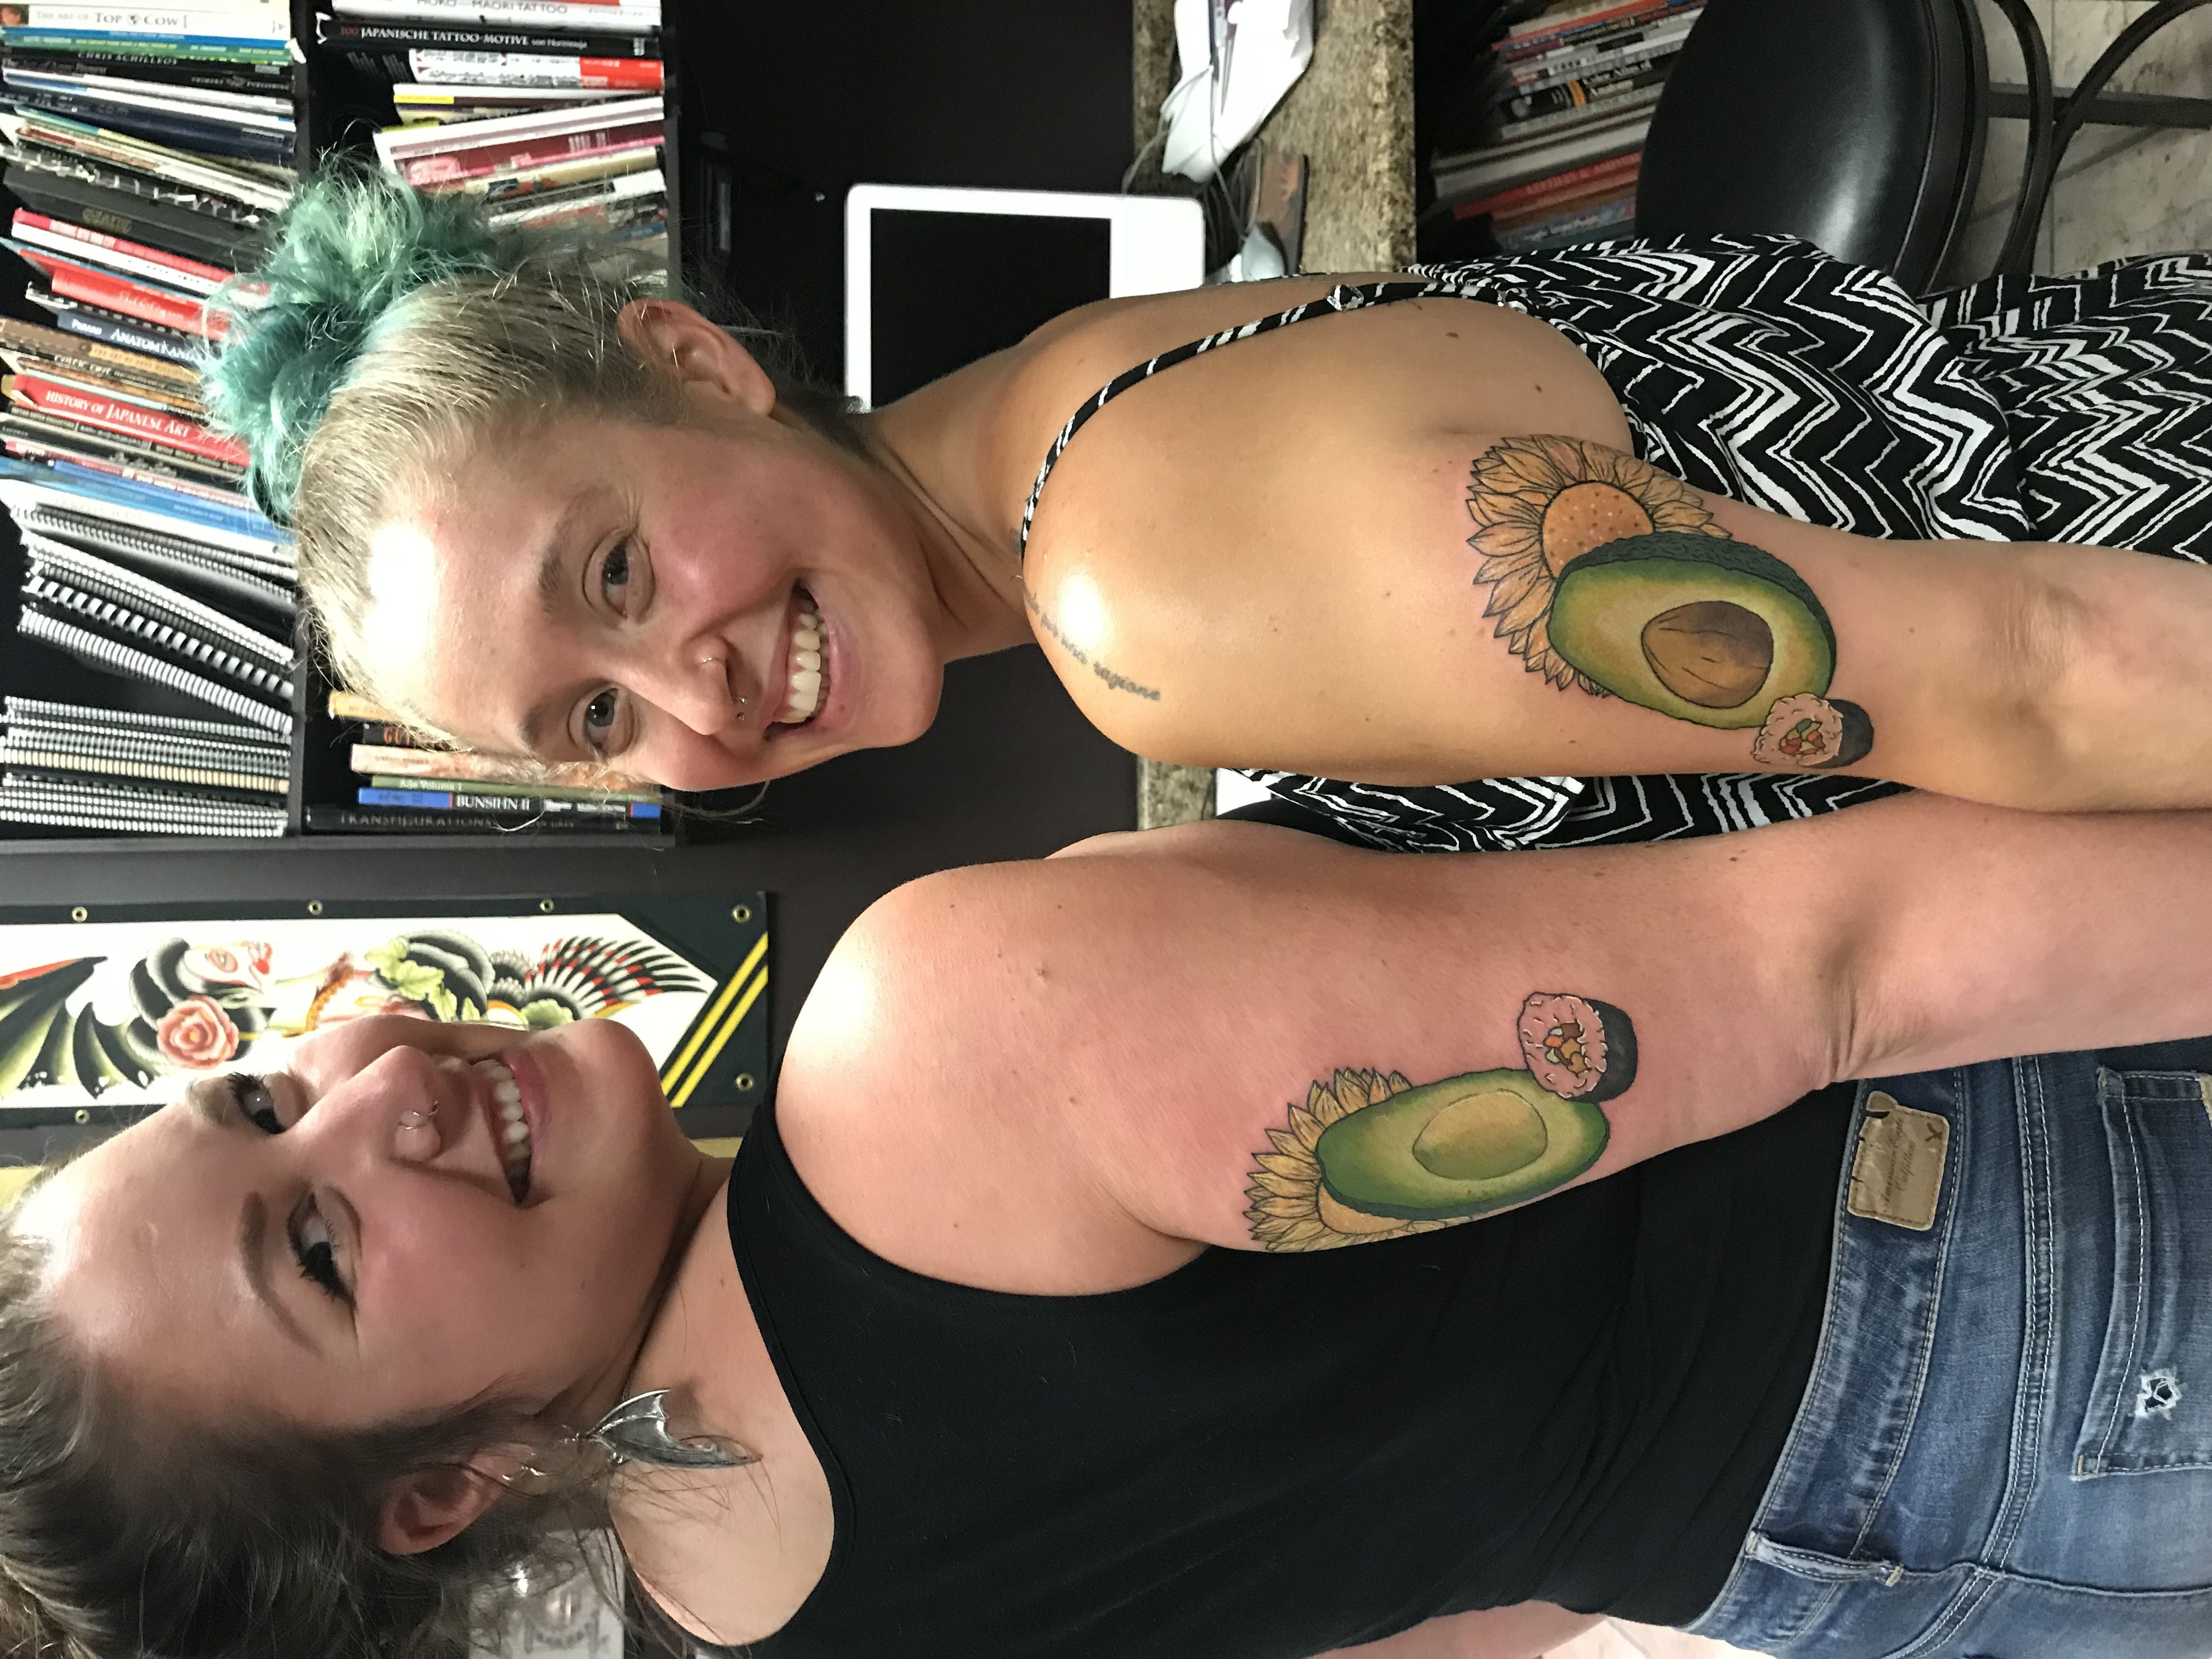 lallentattoo - Avocados and Sushi